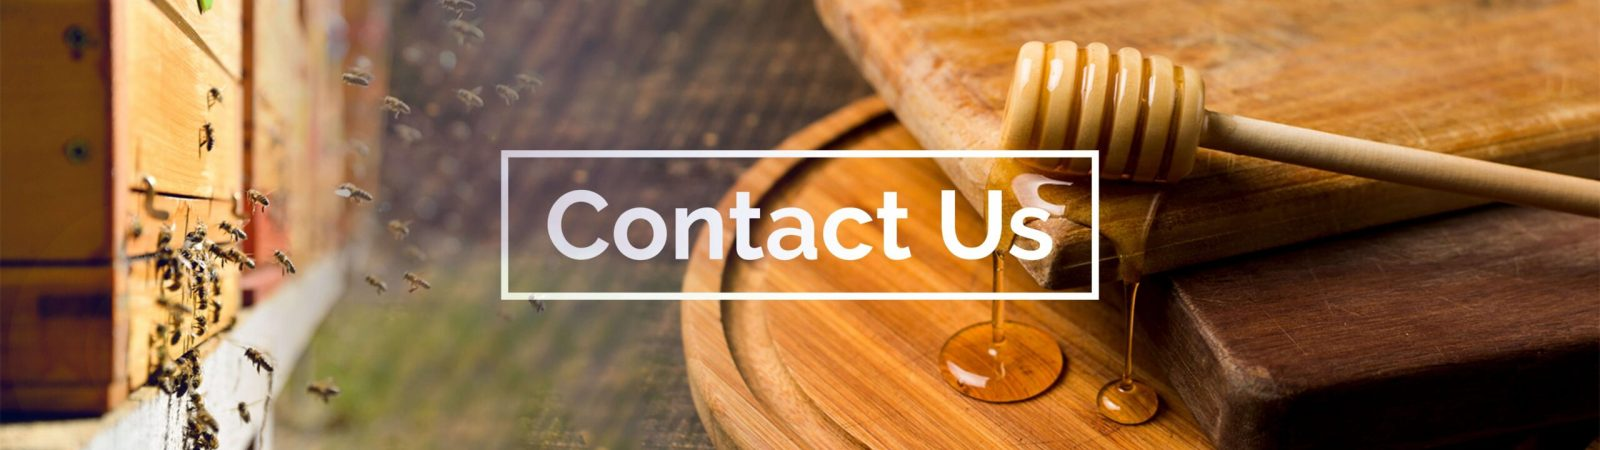 Contact Us banner- Healthy 5